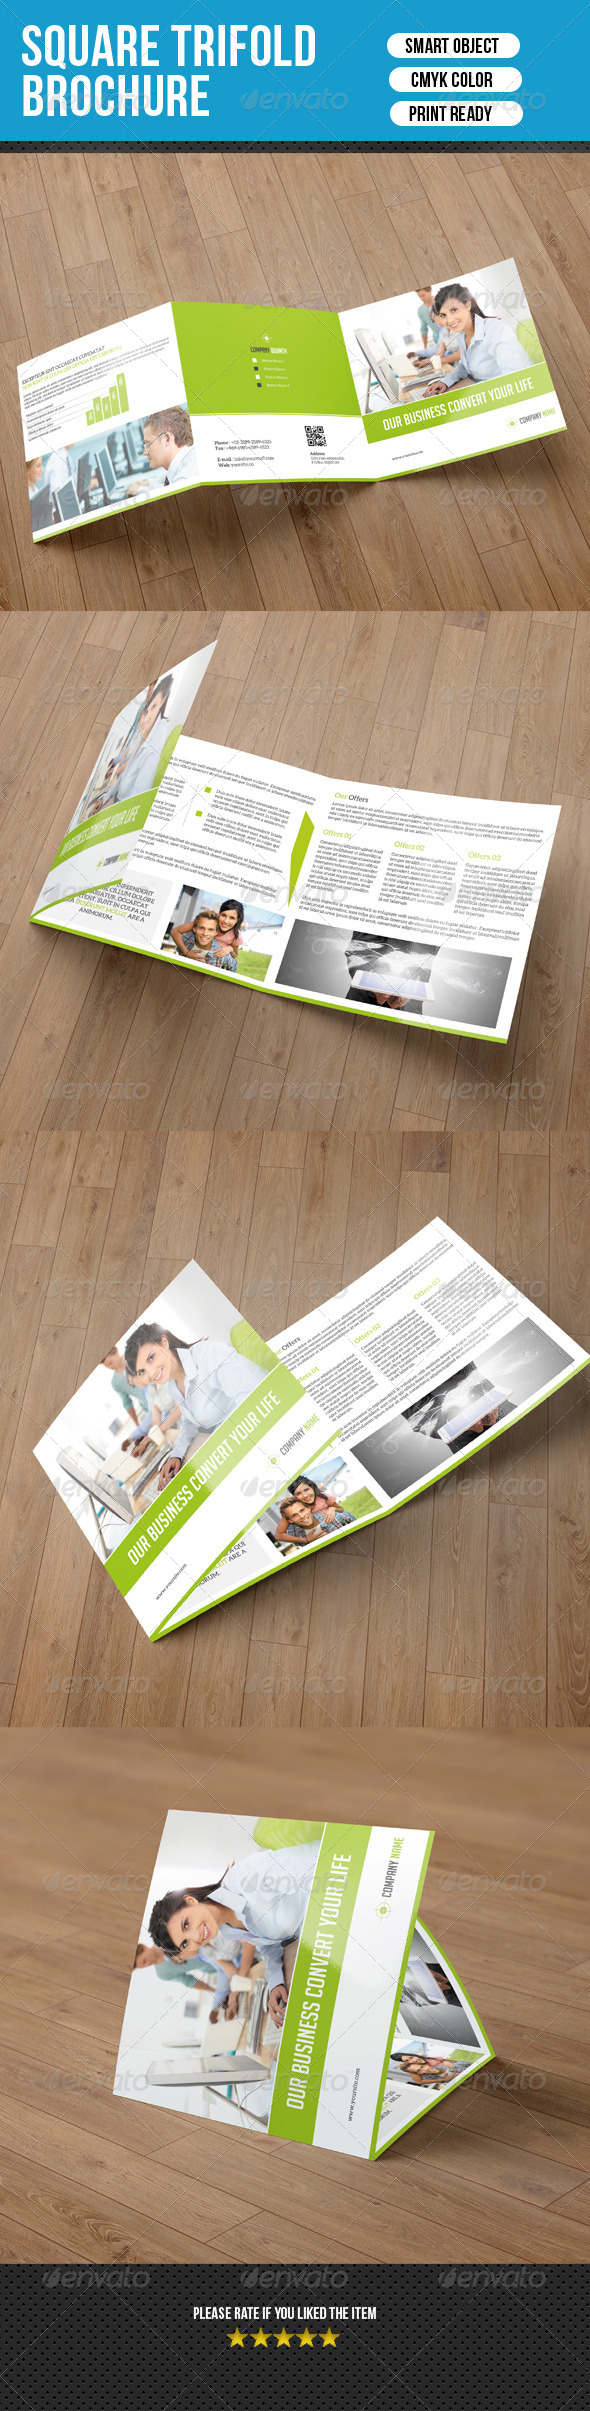 Square Trifold Brochure-Business